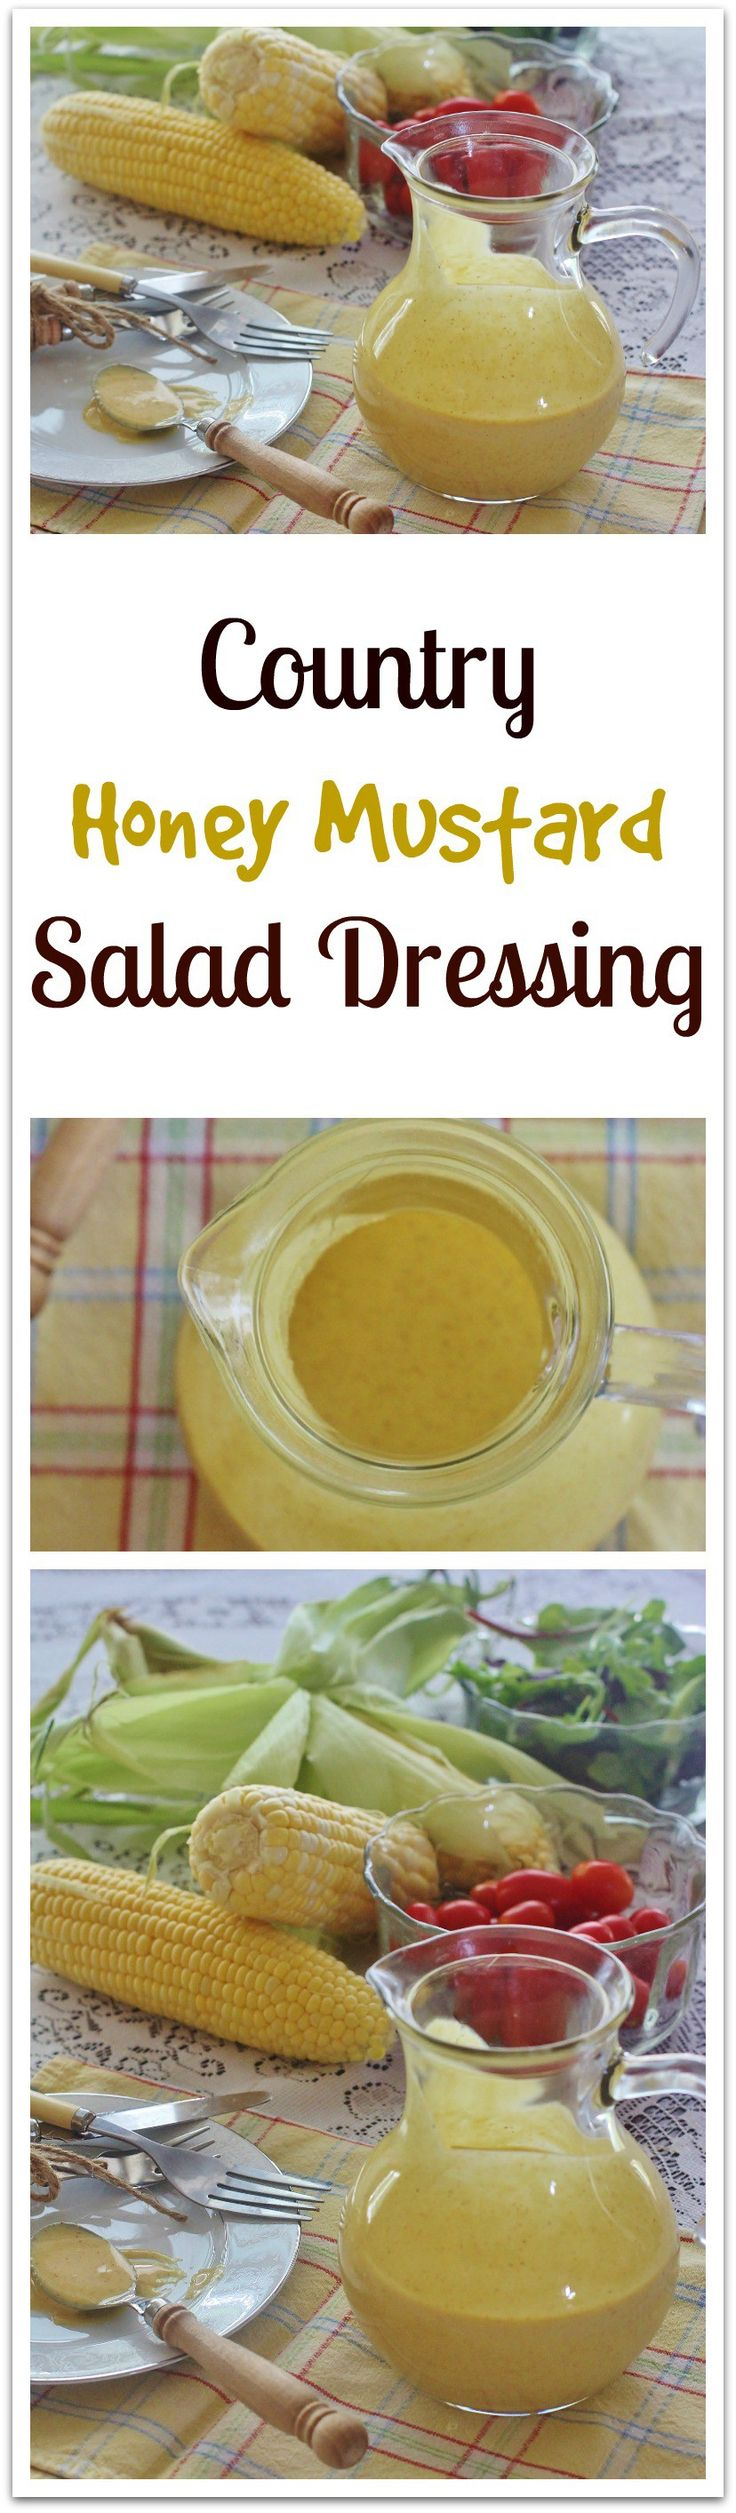 Country Honey Mustard Salad Dressing. An all-purpose sauce made with common ingredients. Use as a salad dressing, marinade, sandwich spread and more.